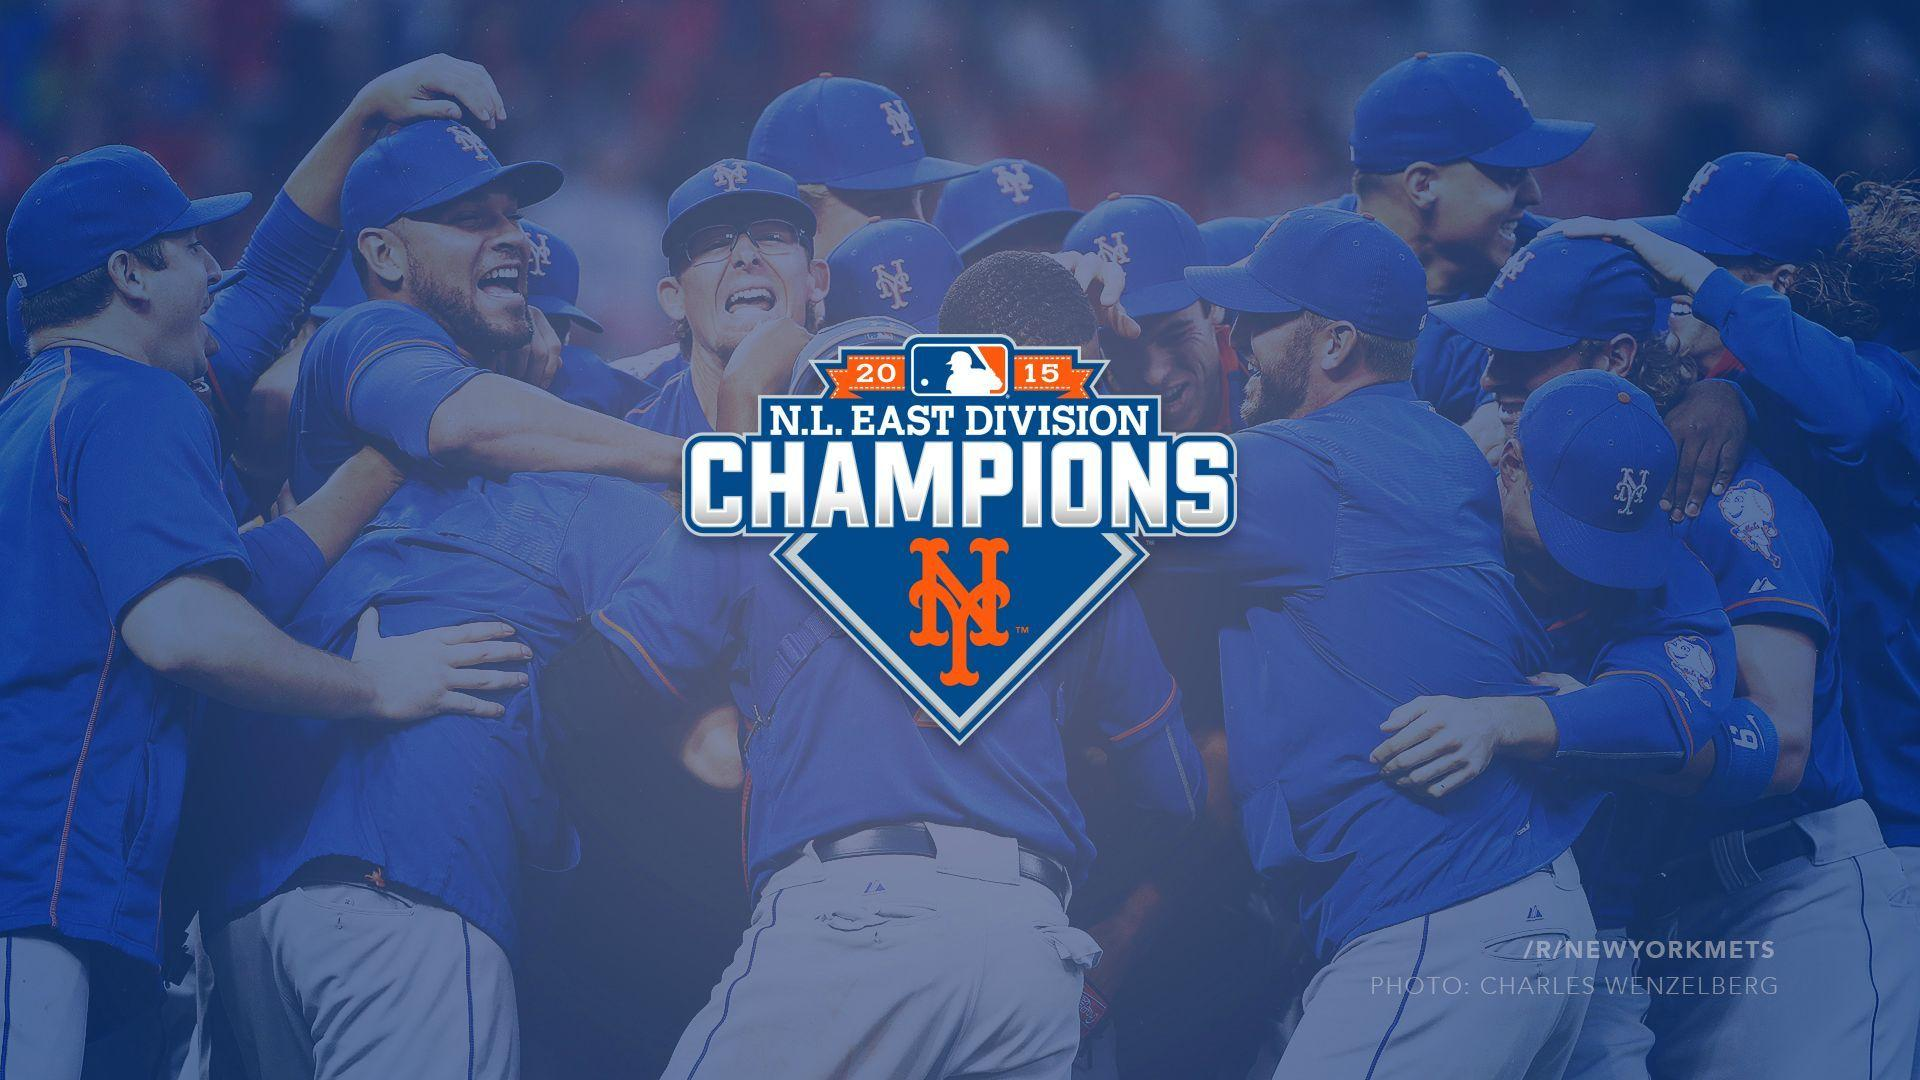 New York Mets - 2015 NL East Champs Wallpaper : NewYorkMets